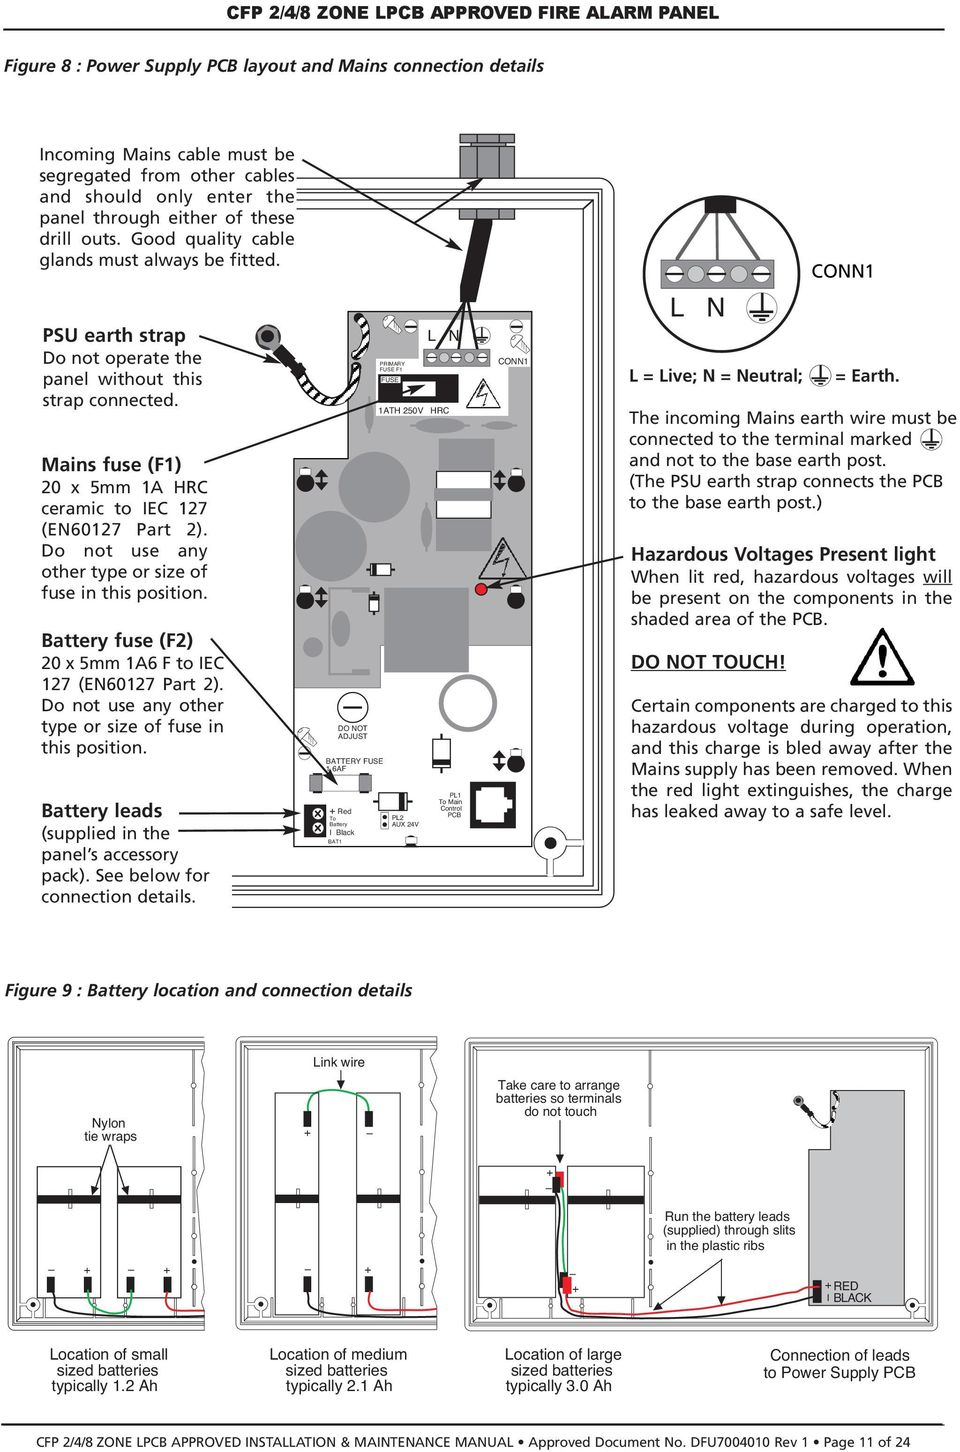 Lpcb approved cfp 248 zone fire alarm control panel installation do not use any other type or size of fuse in this position battery fuse asfbconference2016 Image collections